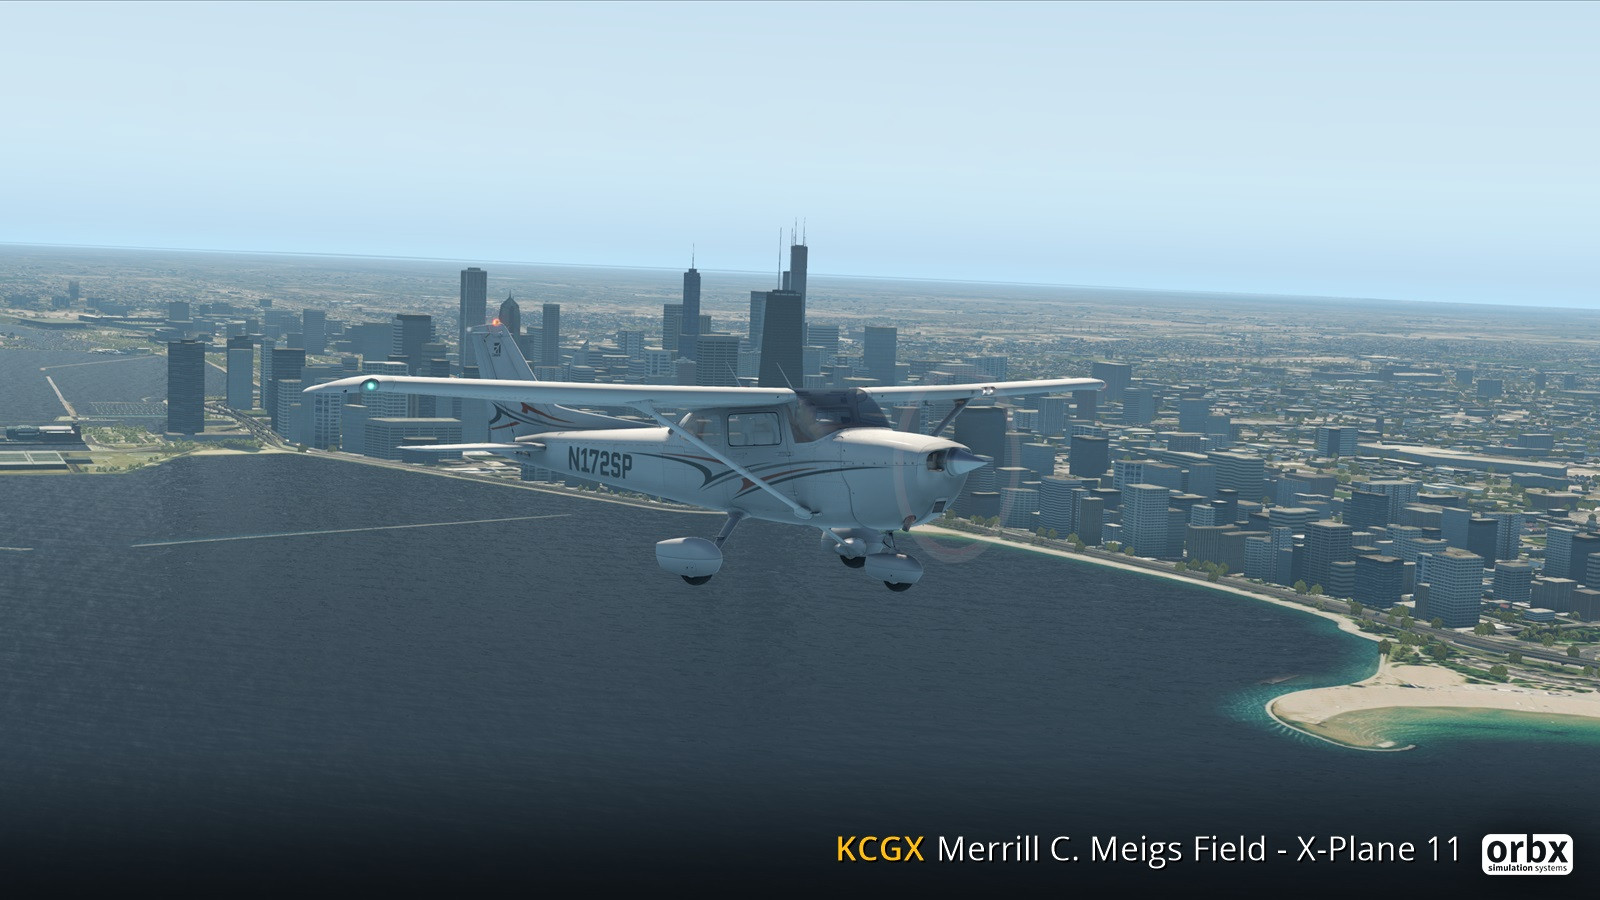 KCGX Merrill C  Meigs Field